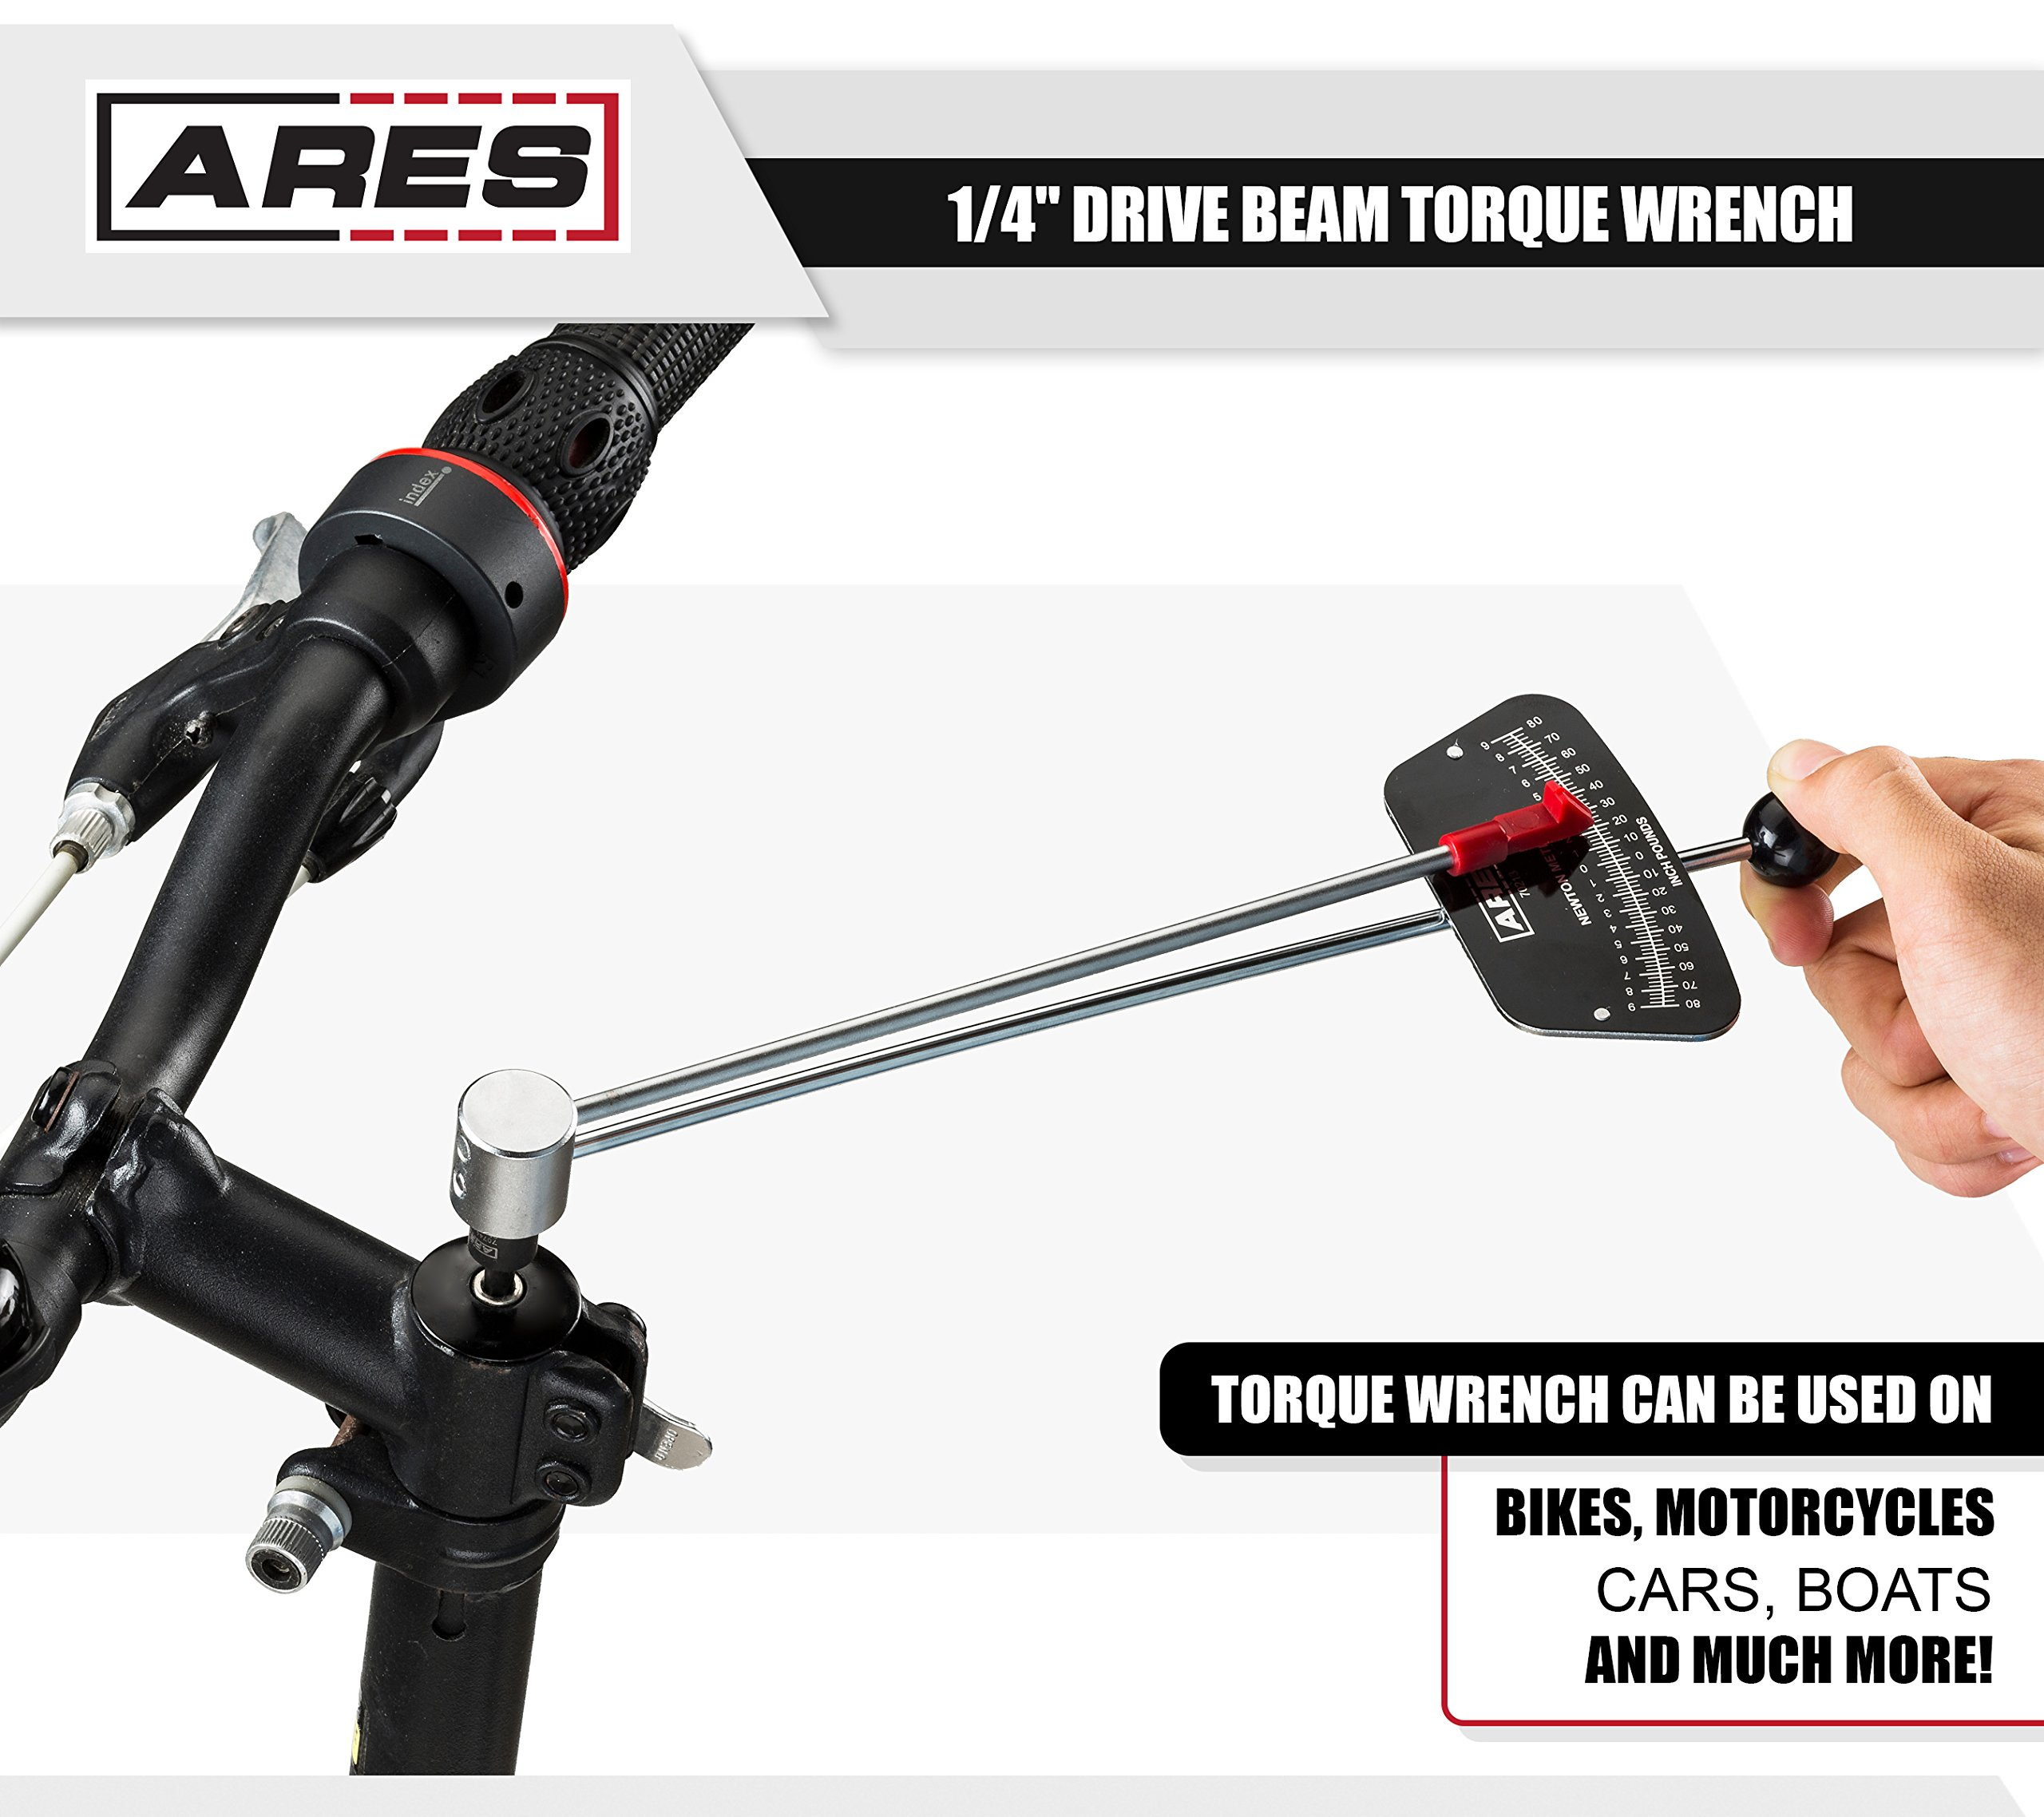 ARES 70213 | 1/4-inch Drive Beam Torque Wrench | 0-80 in/lb and 0-9 Newton Meter Torque Wrench | High Visibility Markings for Easy Readings by ARES (Image #6)